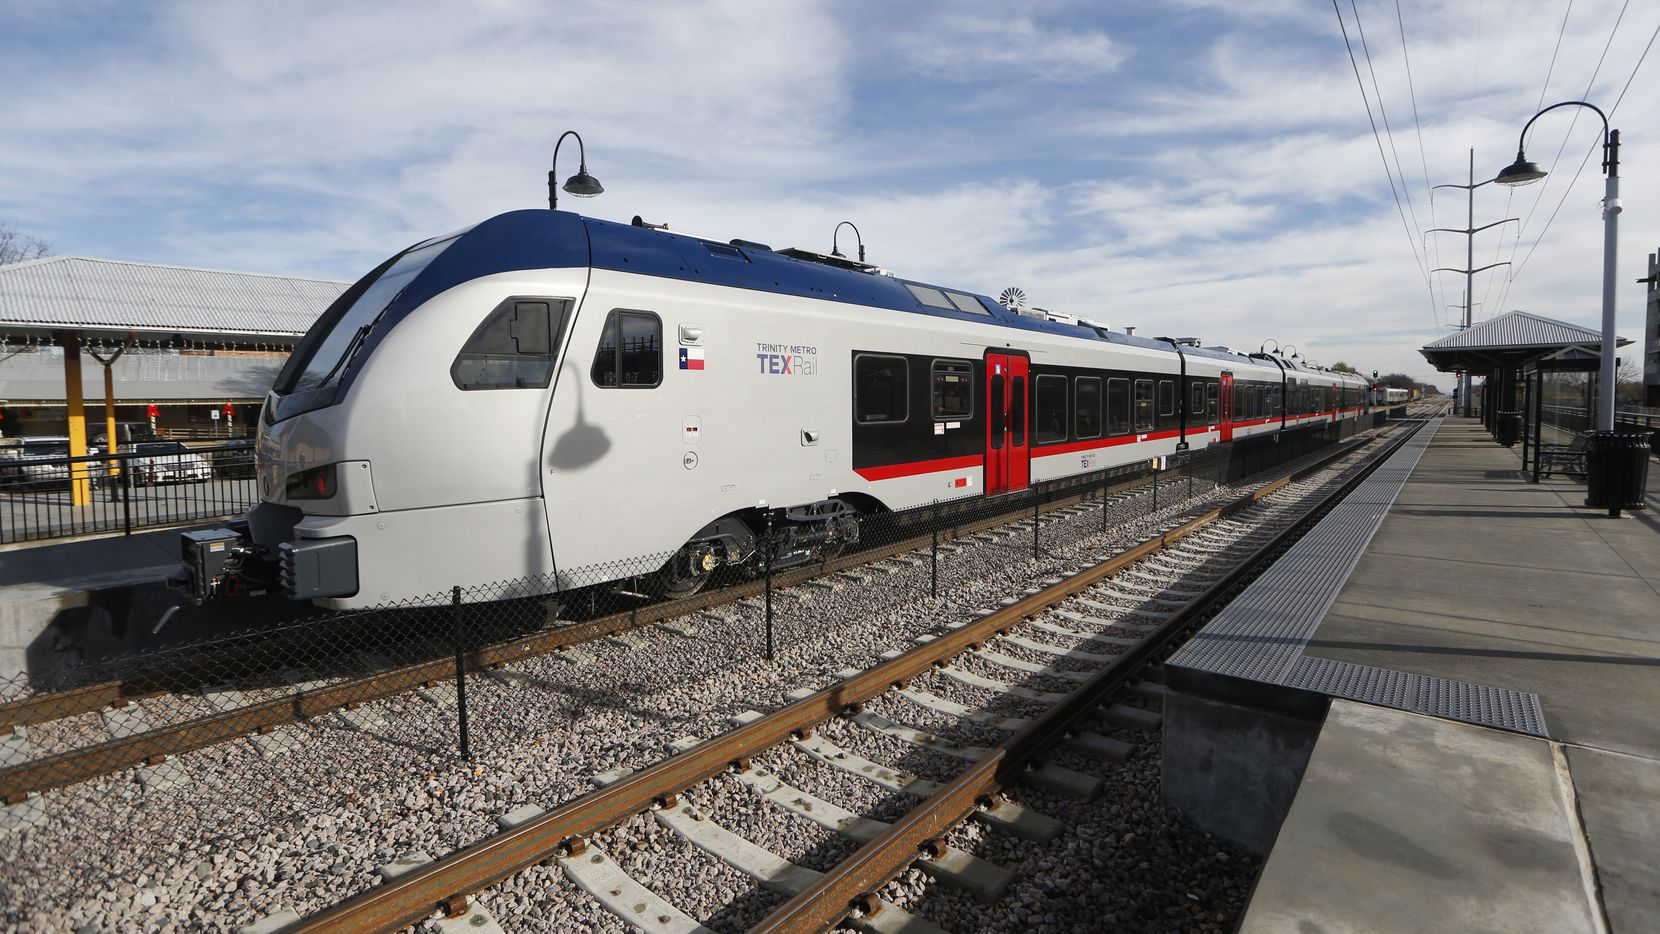 Passengers headed to get their COVID-19 vaccines can ride for free on TEXRail starting Monday.